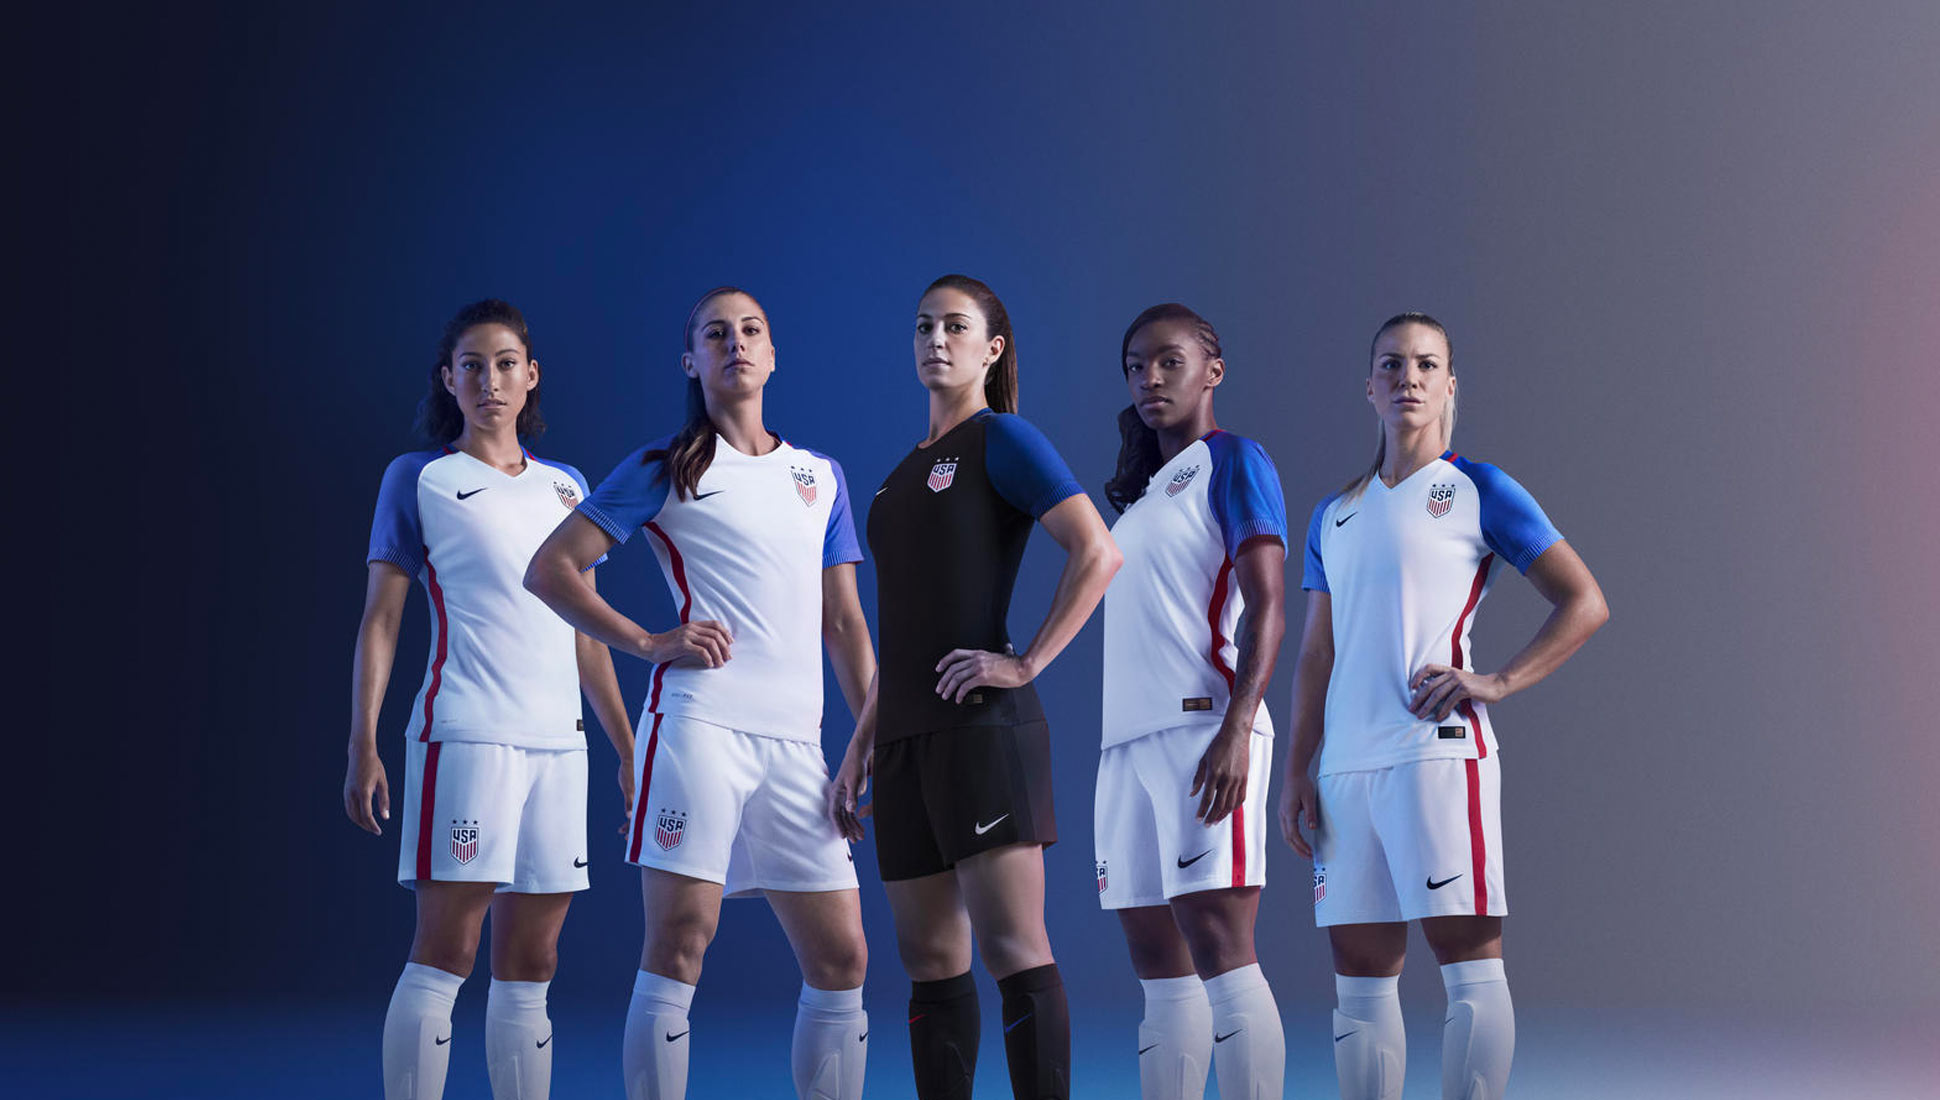 Excepcional sucesor la seguridad  Nike 2016 USA National Soccer Kits - SoccerBible